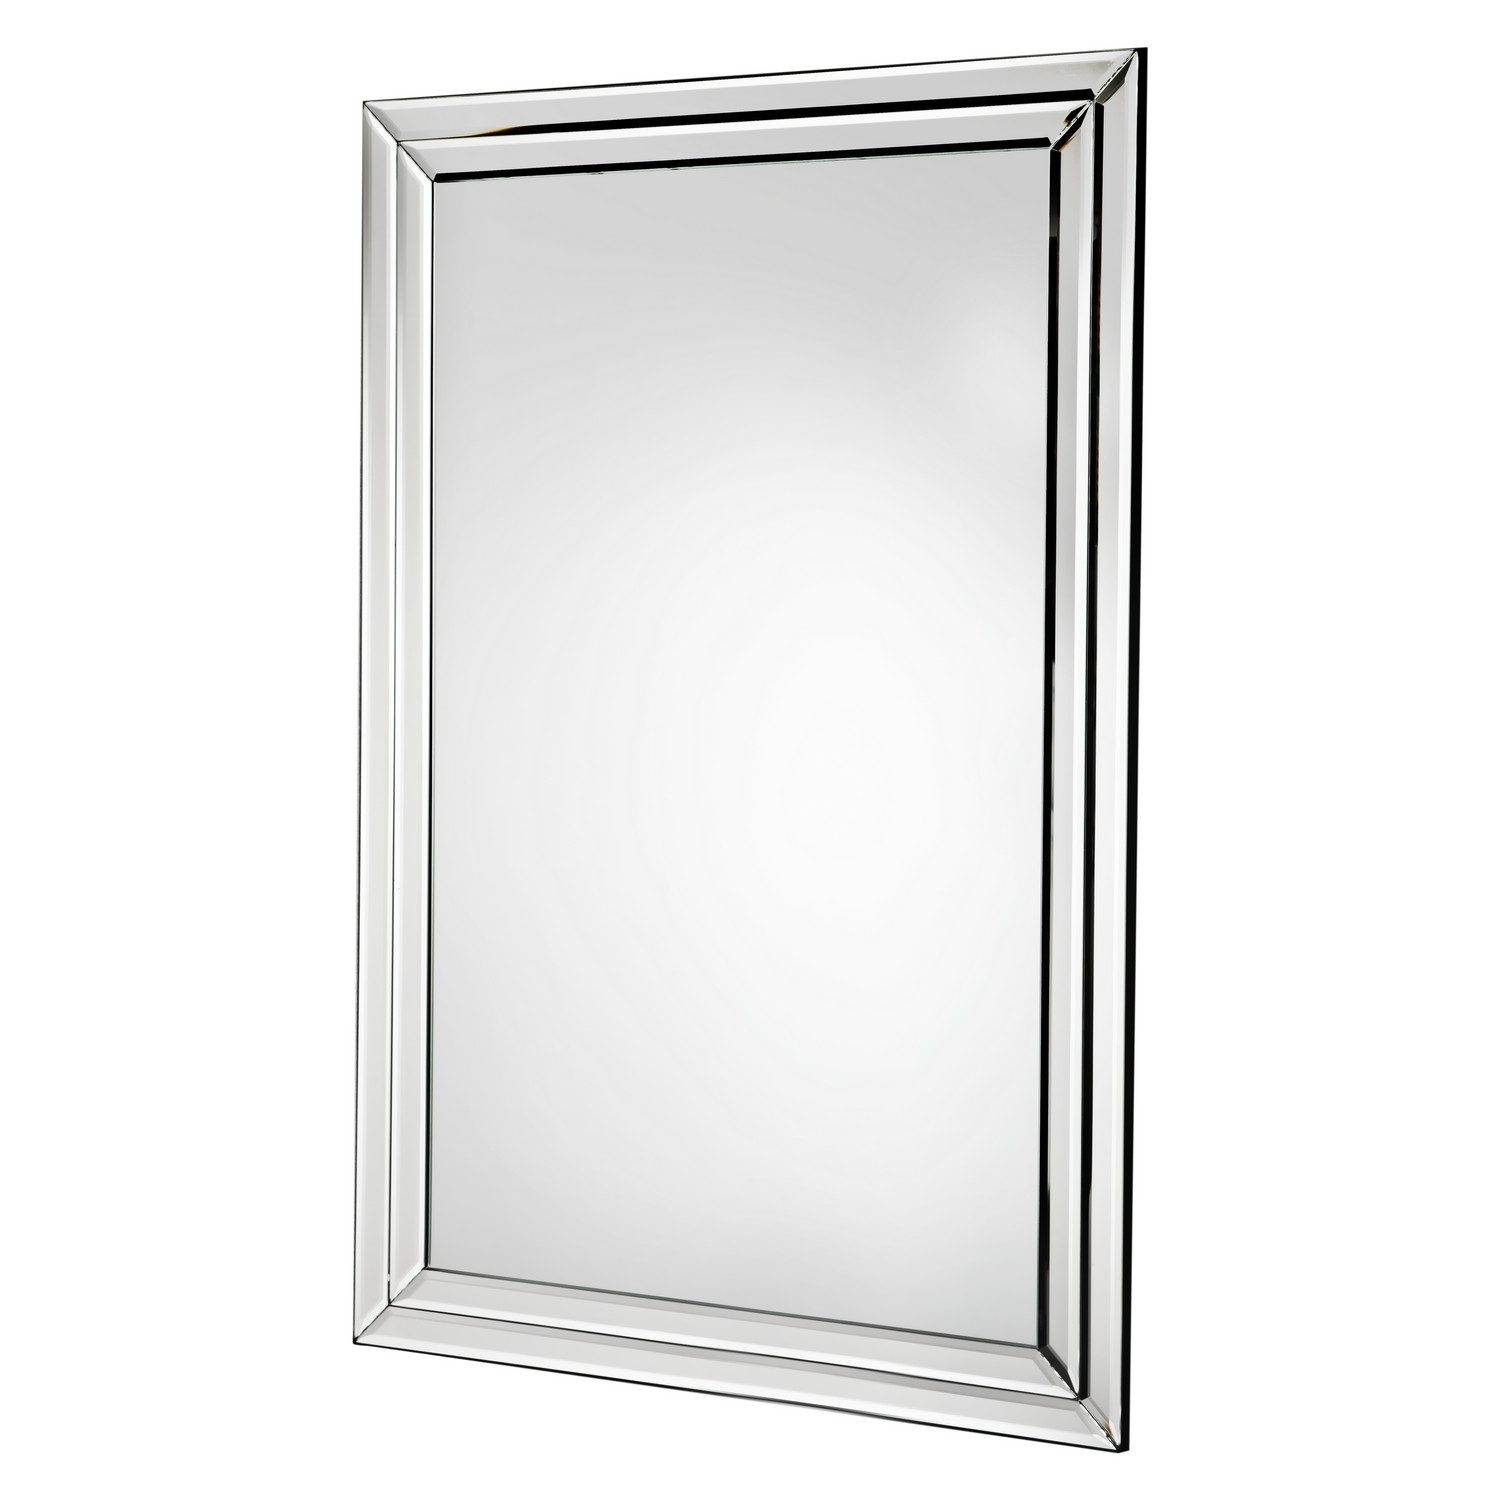 Buy Living Bevelled Glass Edge Wall Mirror Silver At Argoscouk Throughout Bevelled Glass Mirror (View 13 of 15)